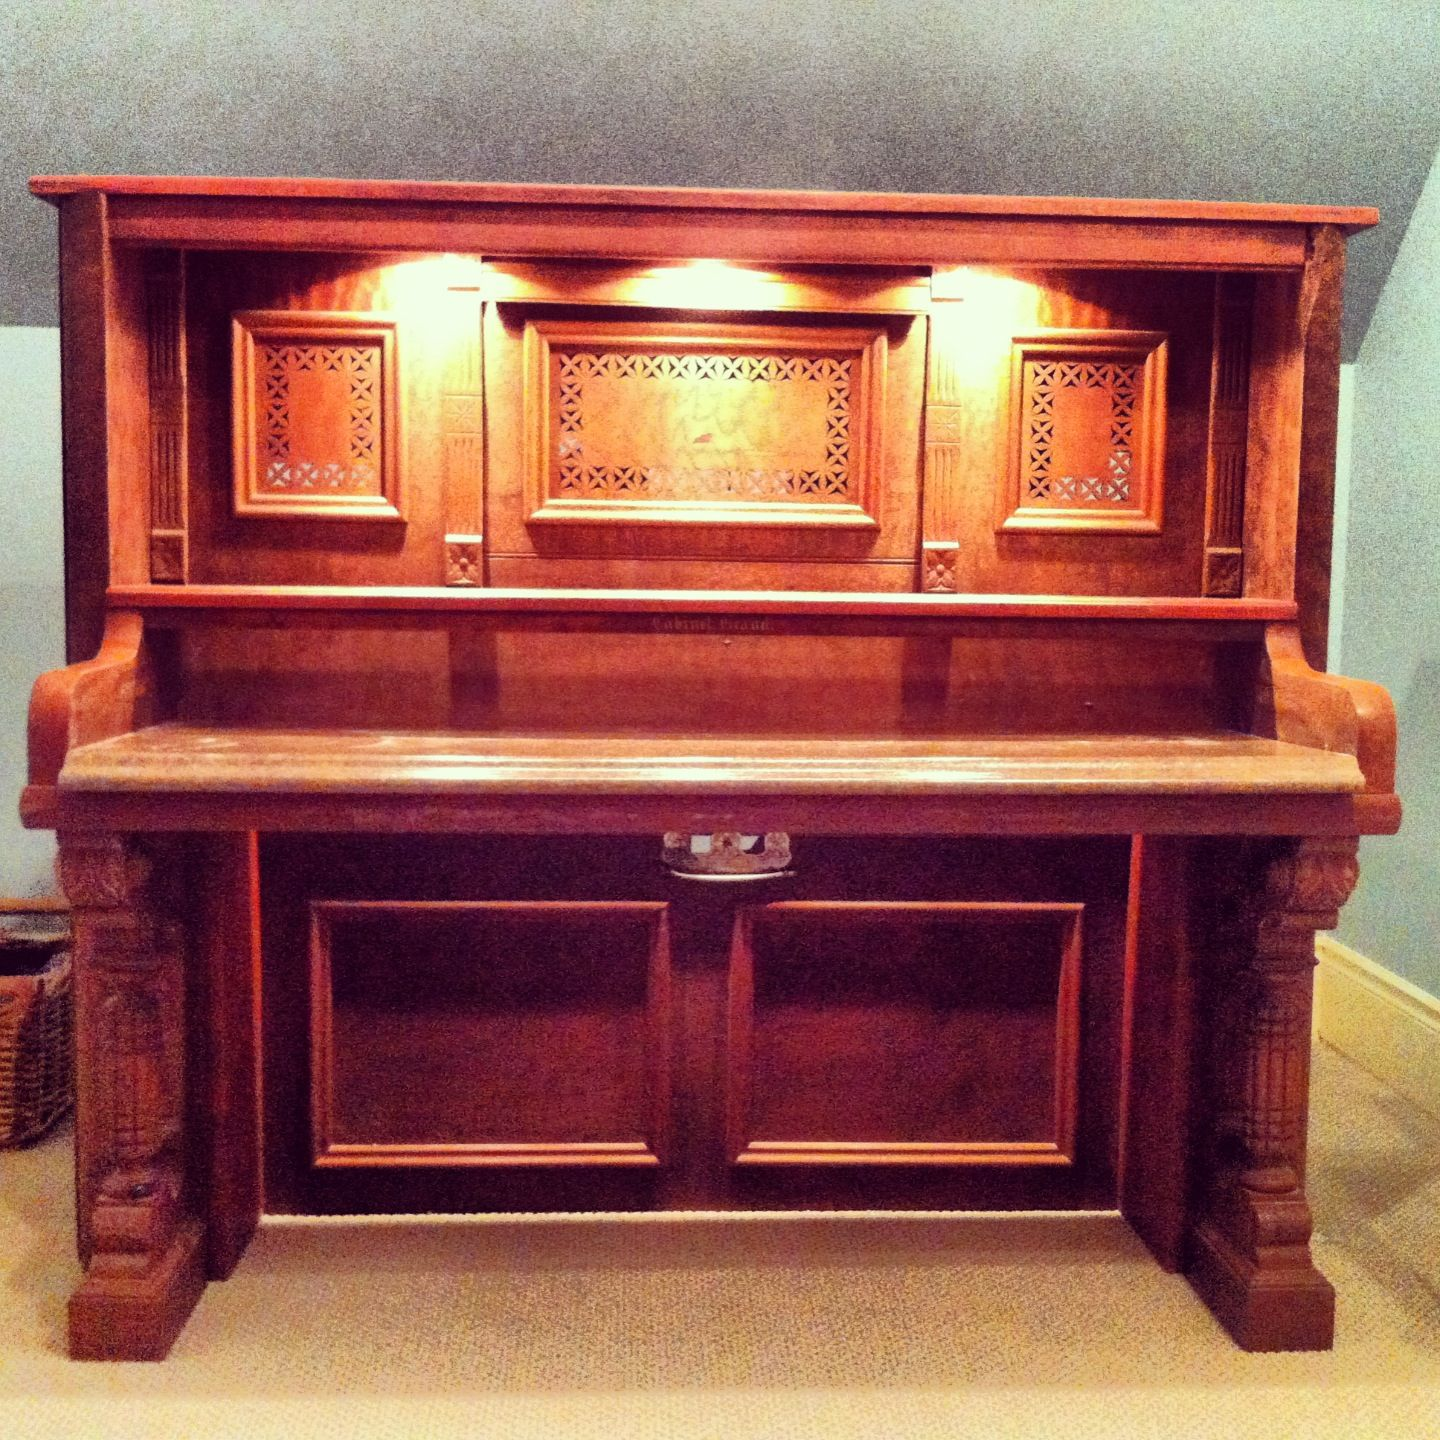 Old piano transformed into a desk! - Might Have The Most Creative Parents Out There! They Transformed